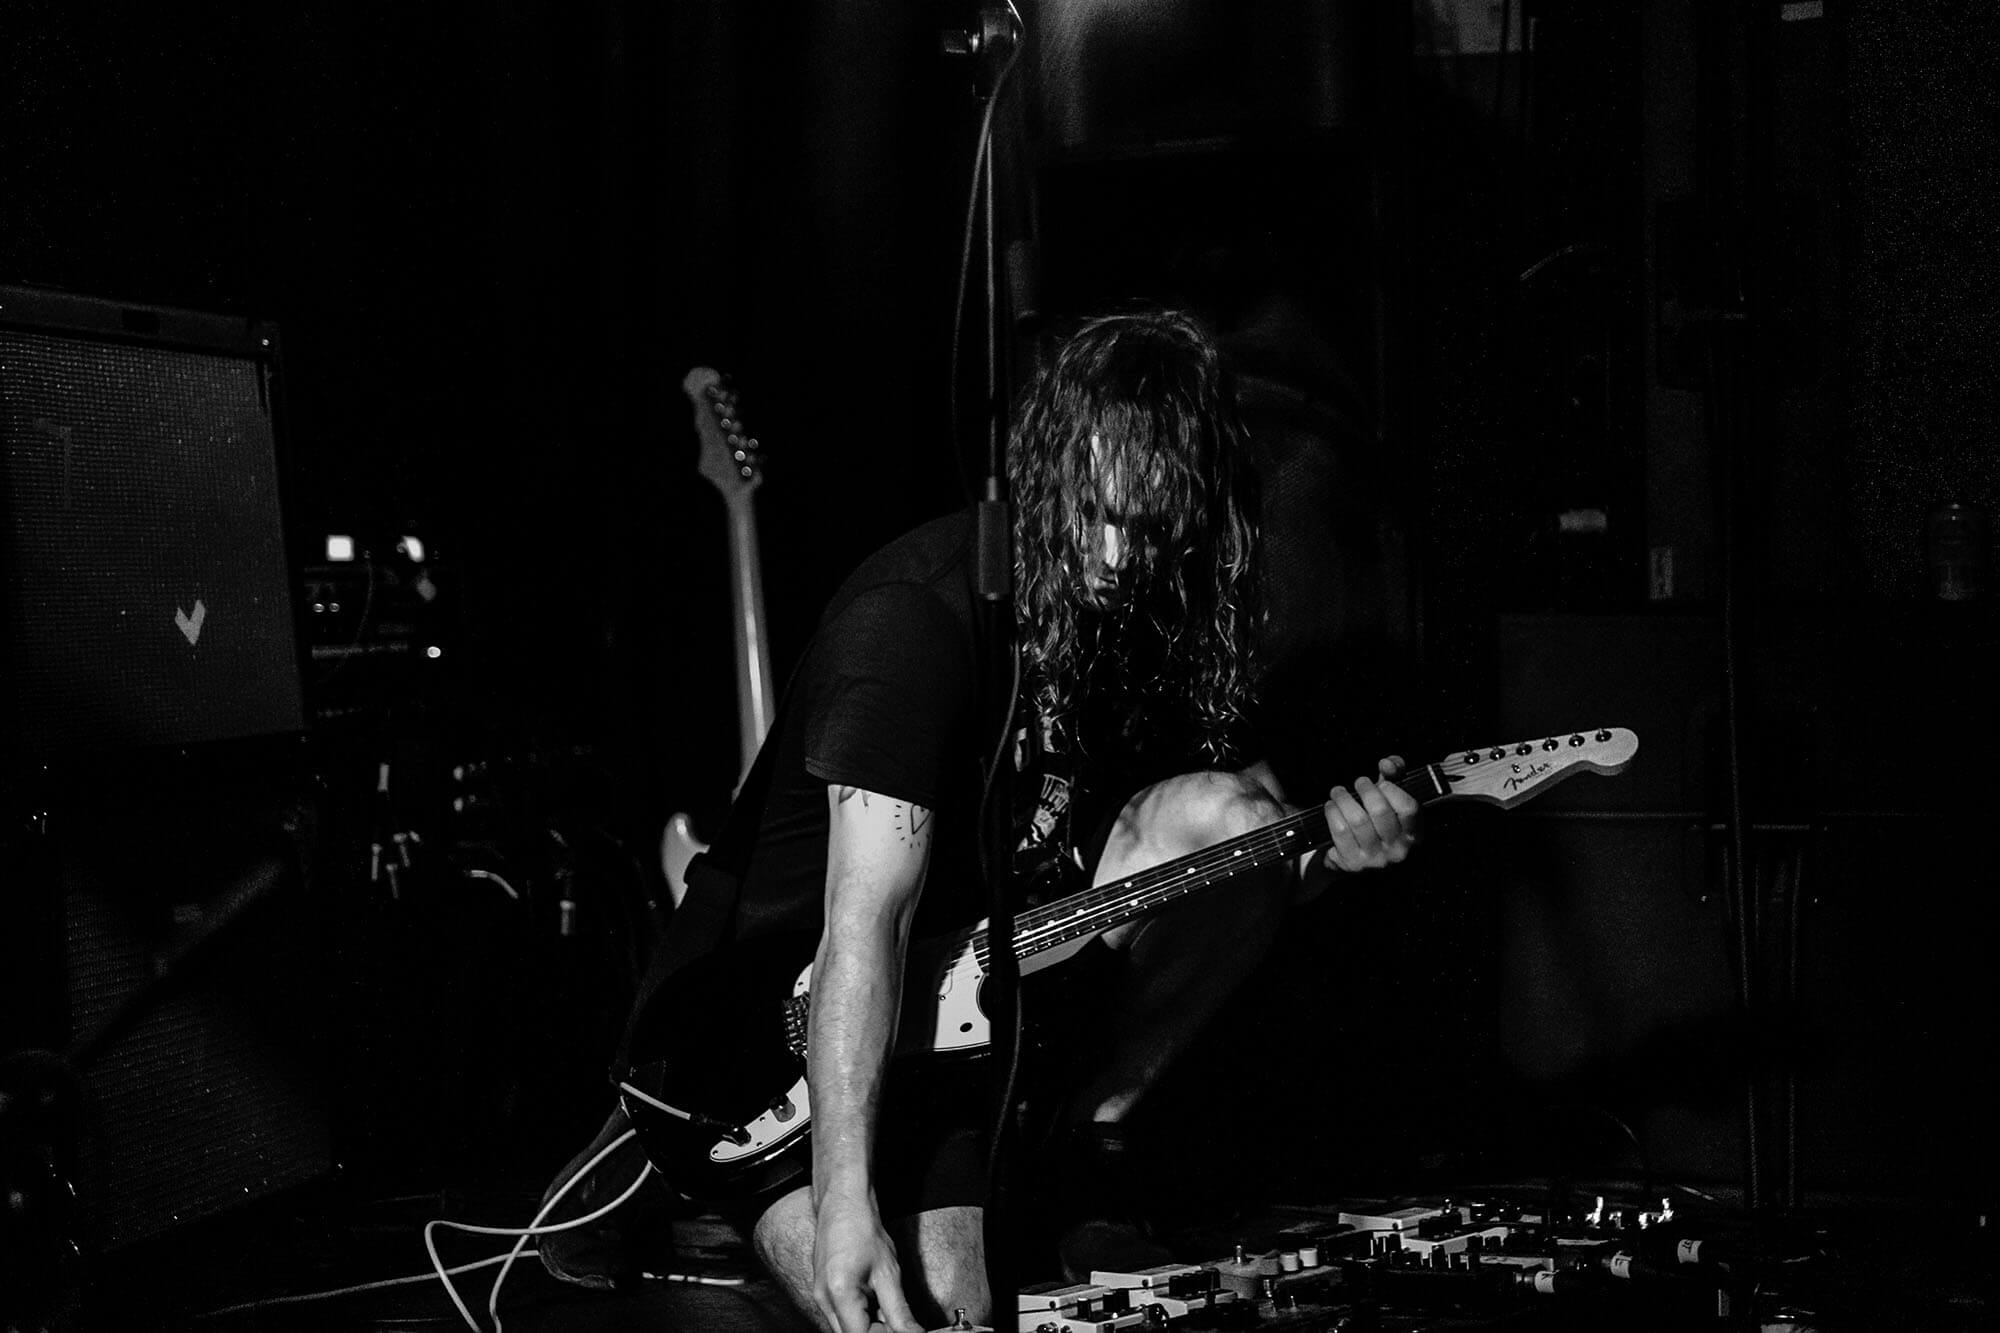 DZ-Deathrays-Freakout-about-bologna-ph-beatrice-belletti-9